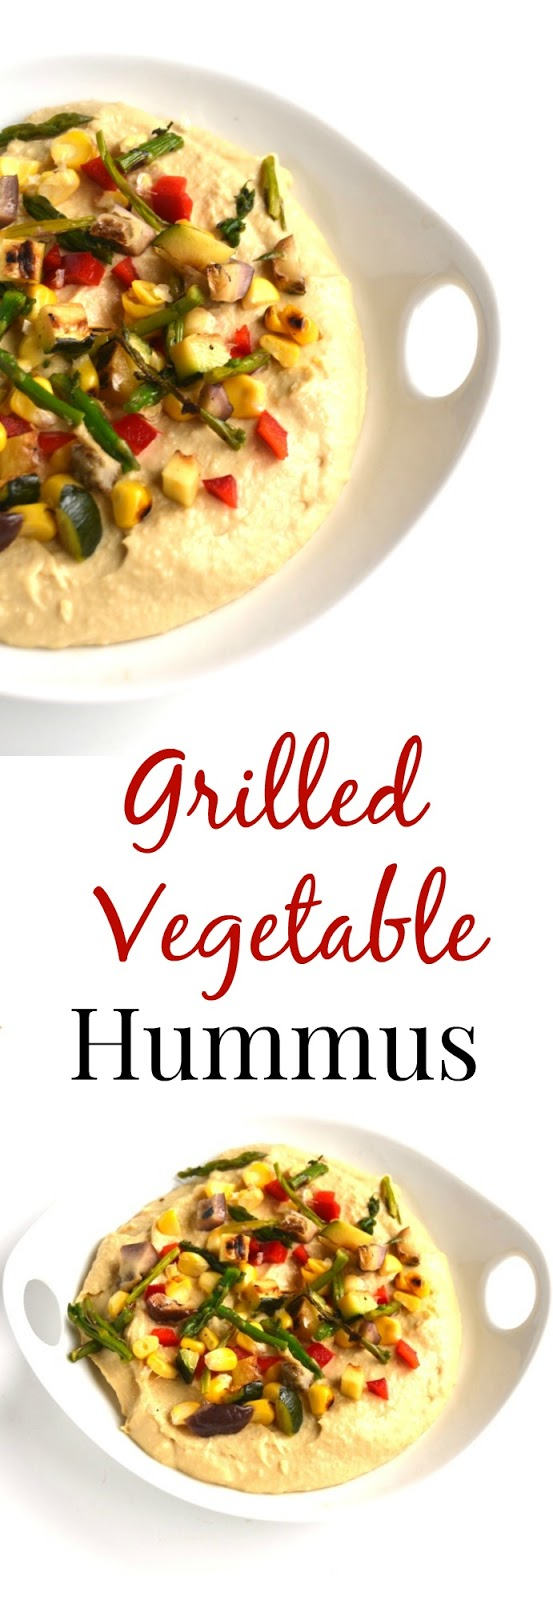 This simple Grilled Vegetable Hummus takes 10 minutes to make and is a delicious snack or appetizer! Customize with your favorite veggies and spices. www.nutritionistreviews.com